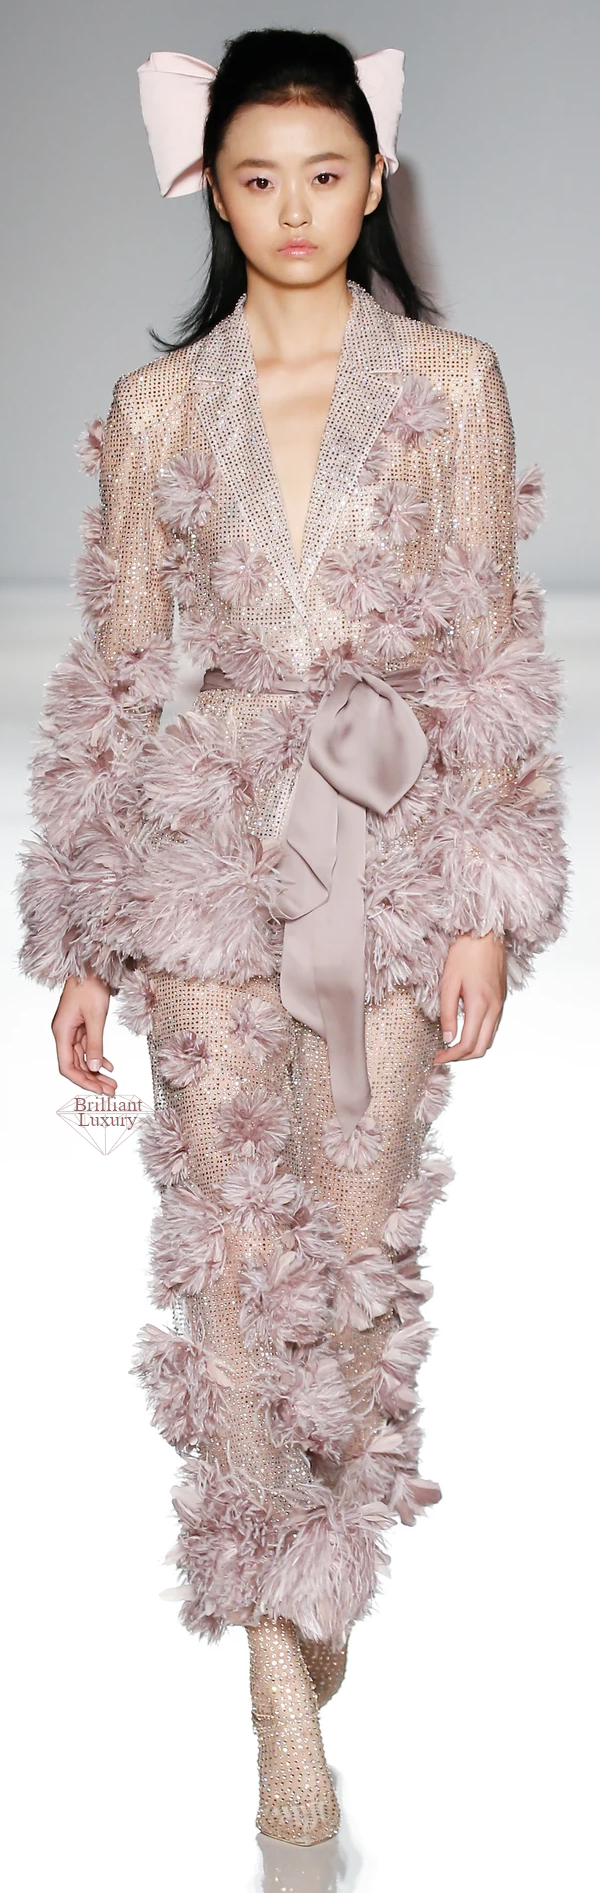 Ralph & Russo pale pink tulle pyjama suit embellished with crystals and enriched with ostrich and coque feather pom poms #brilliantluxury